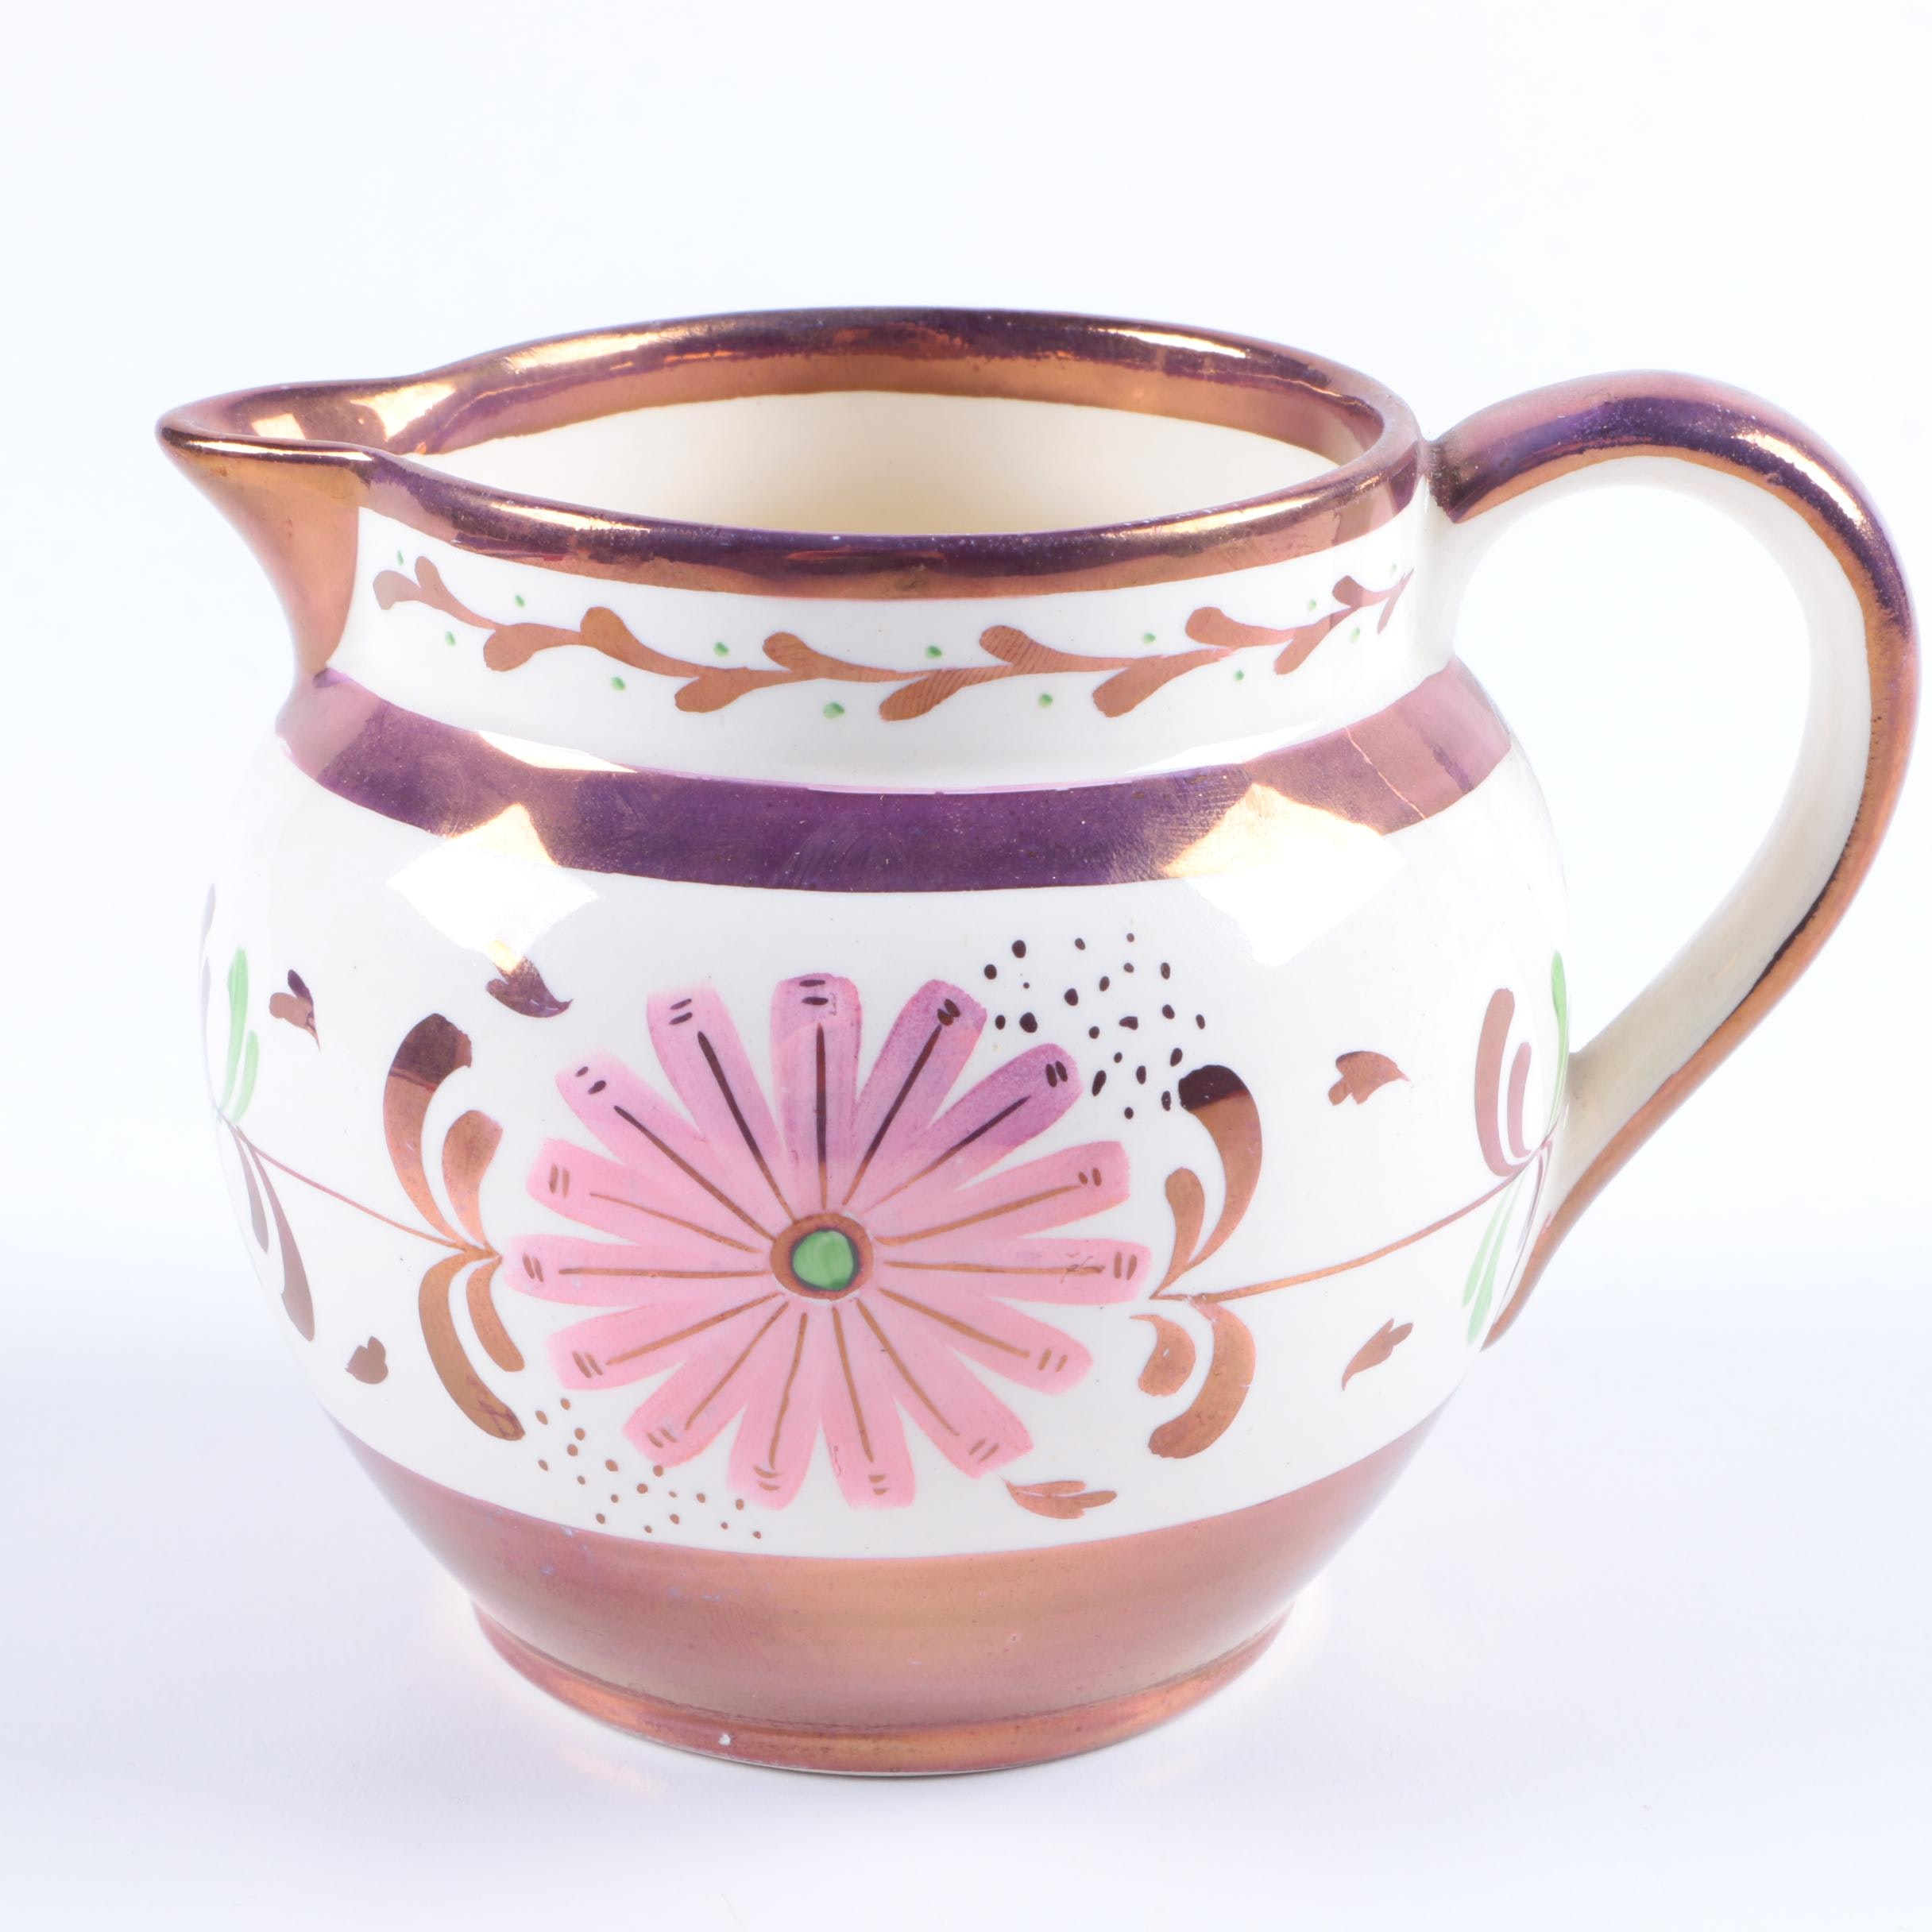 Old Castle Pink Lusterware Pitcher